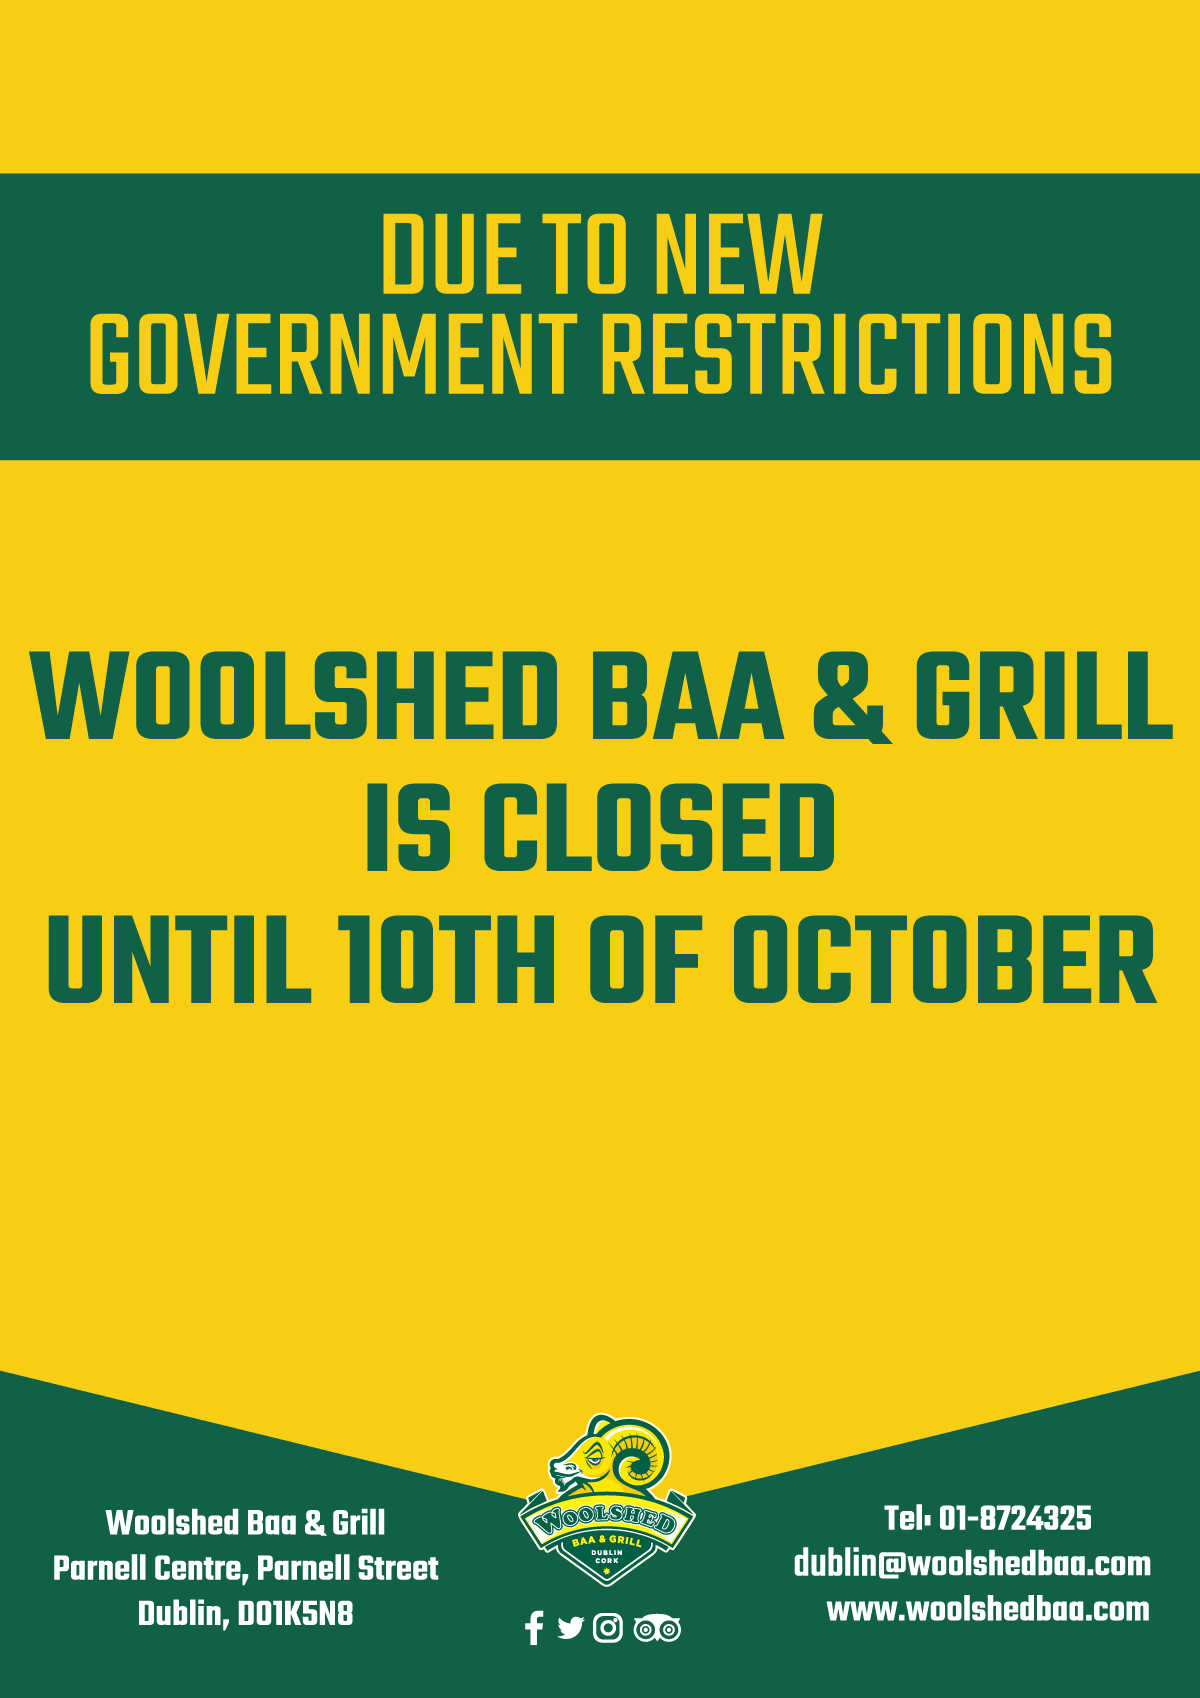 Closed until 10th of October